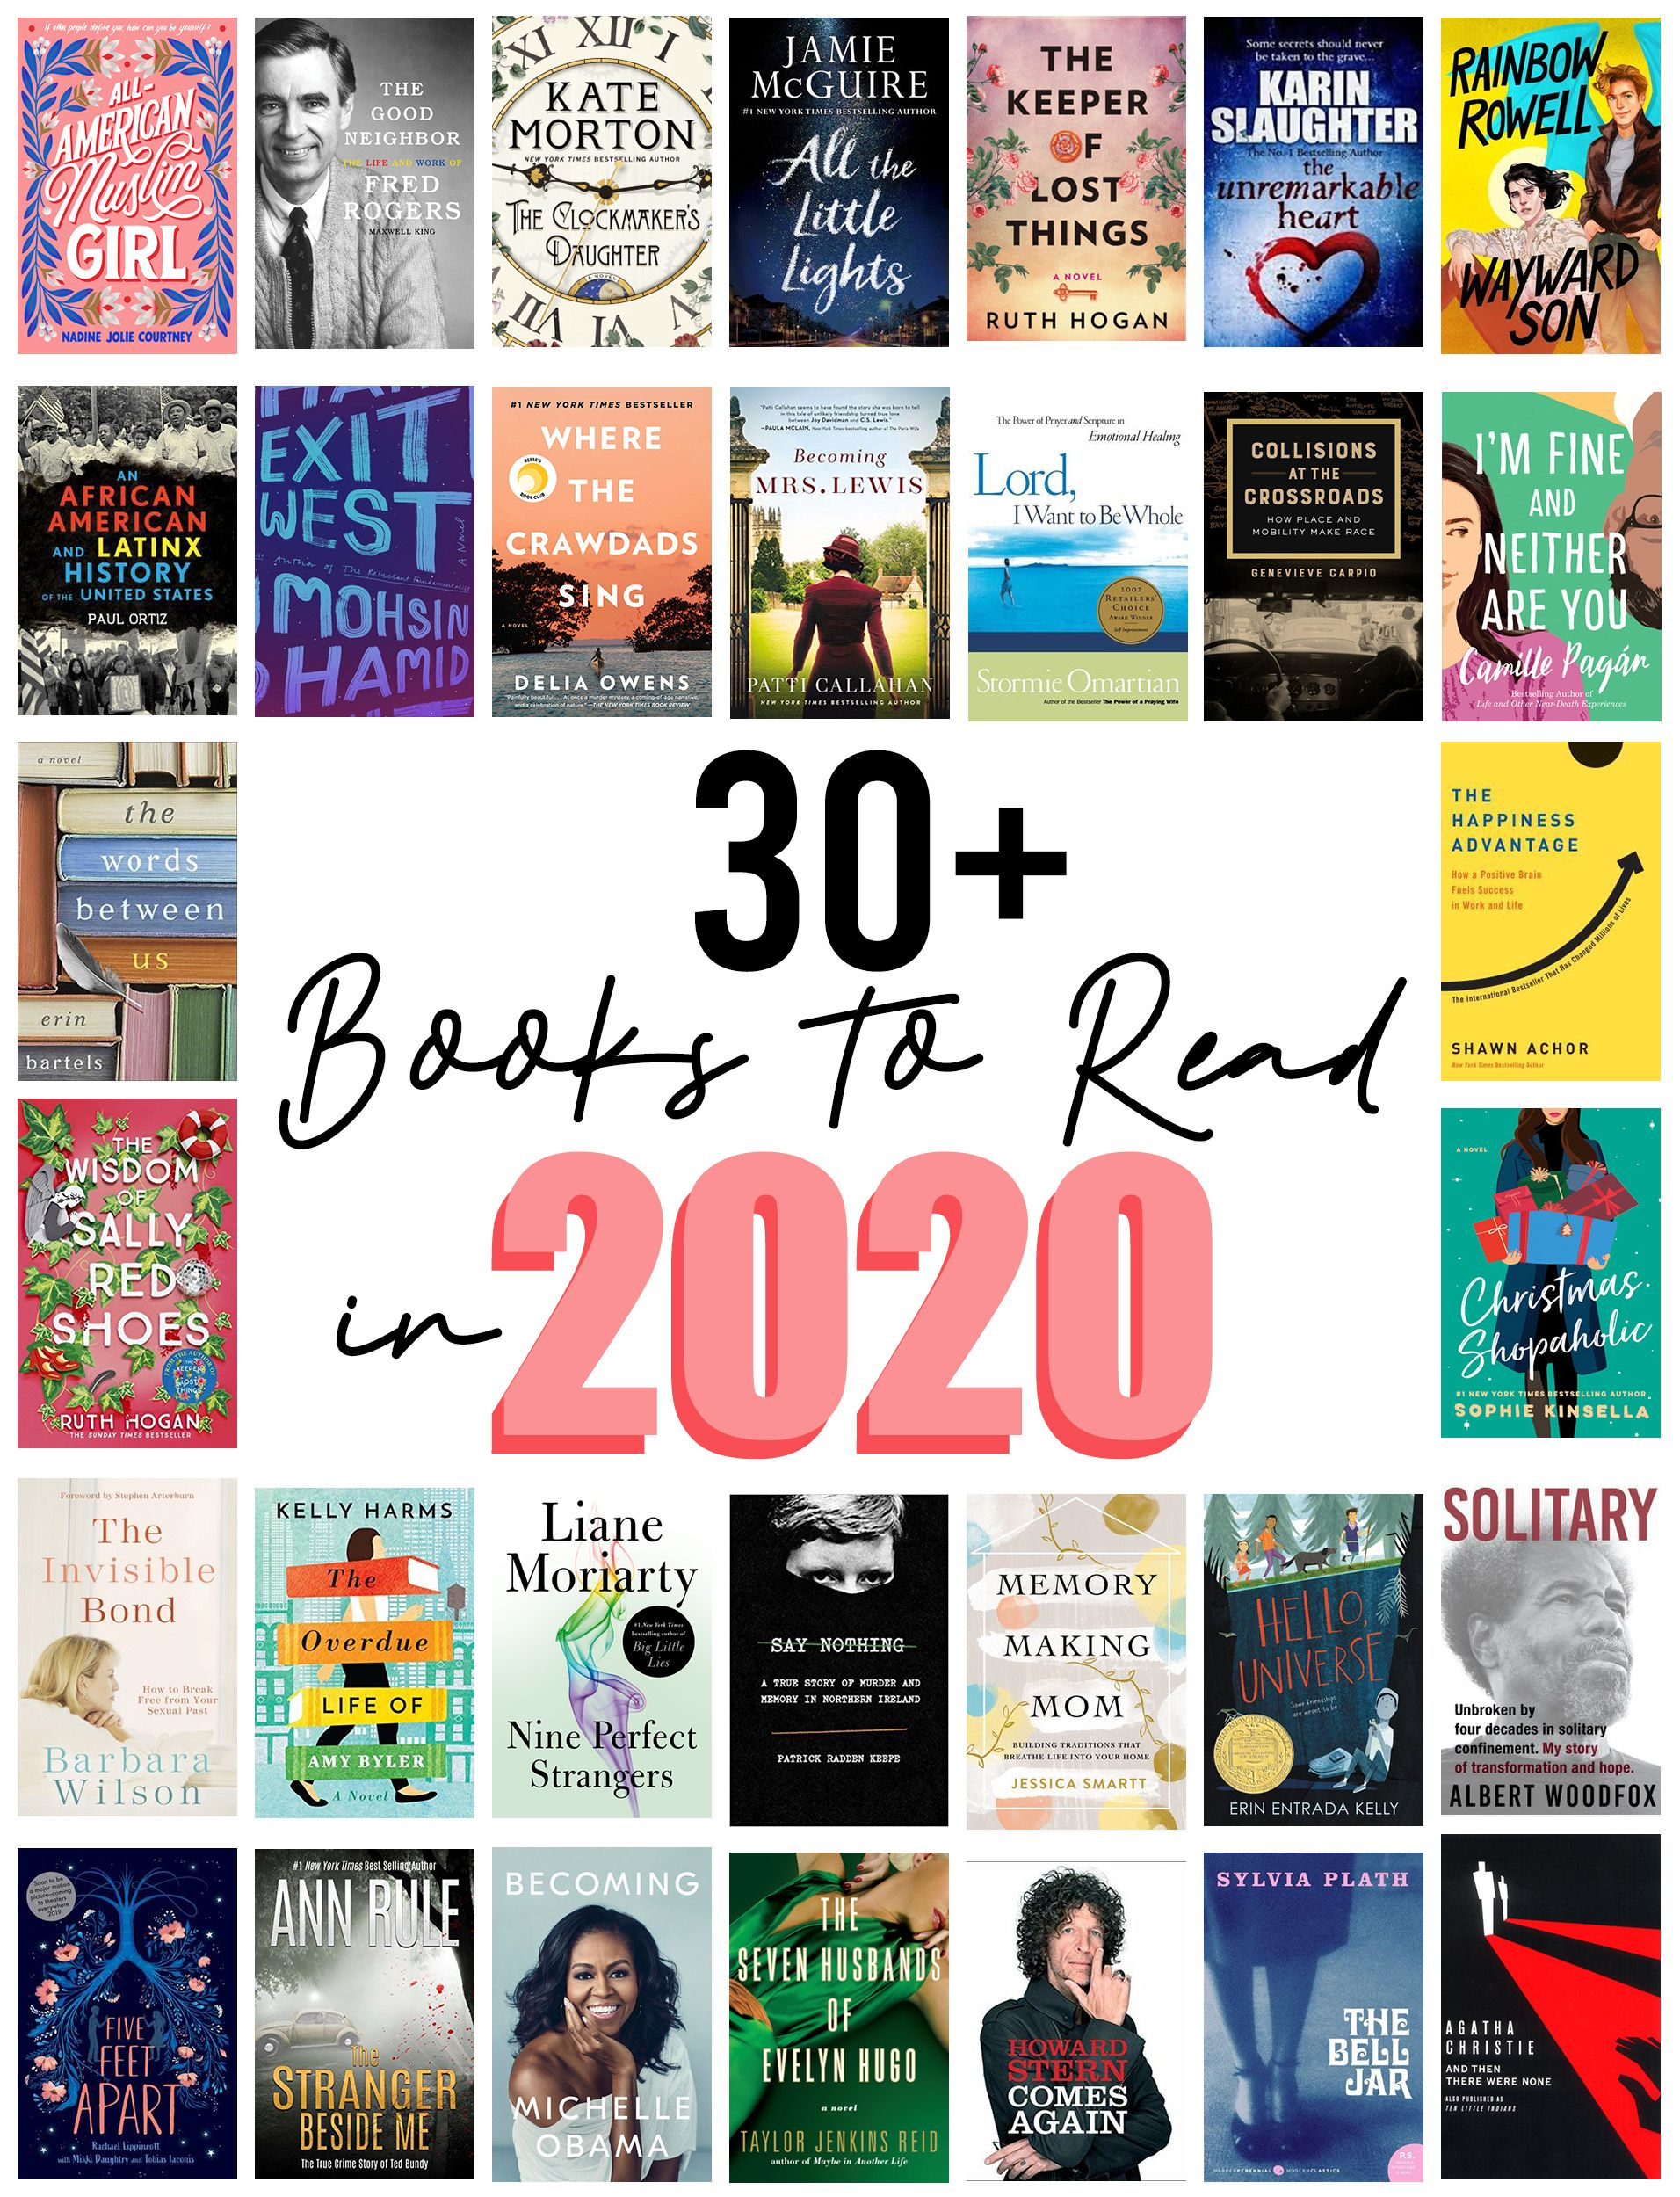 Reading List 30 Books To Read In 2020 Love Joleen Readinglist Books Bookstoread Booklist Whattoreadin2020 Books To Read Books Trending Books